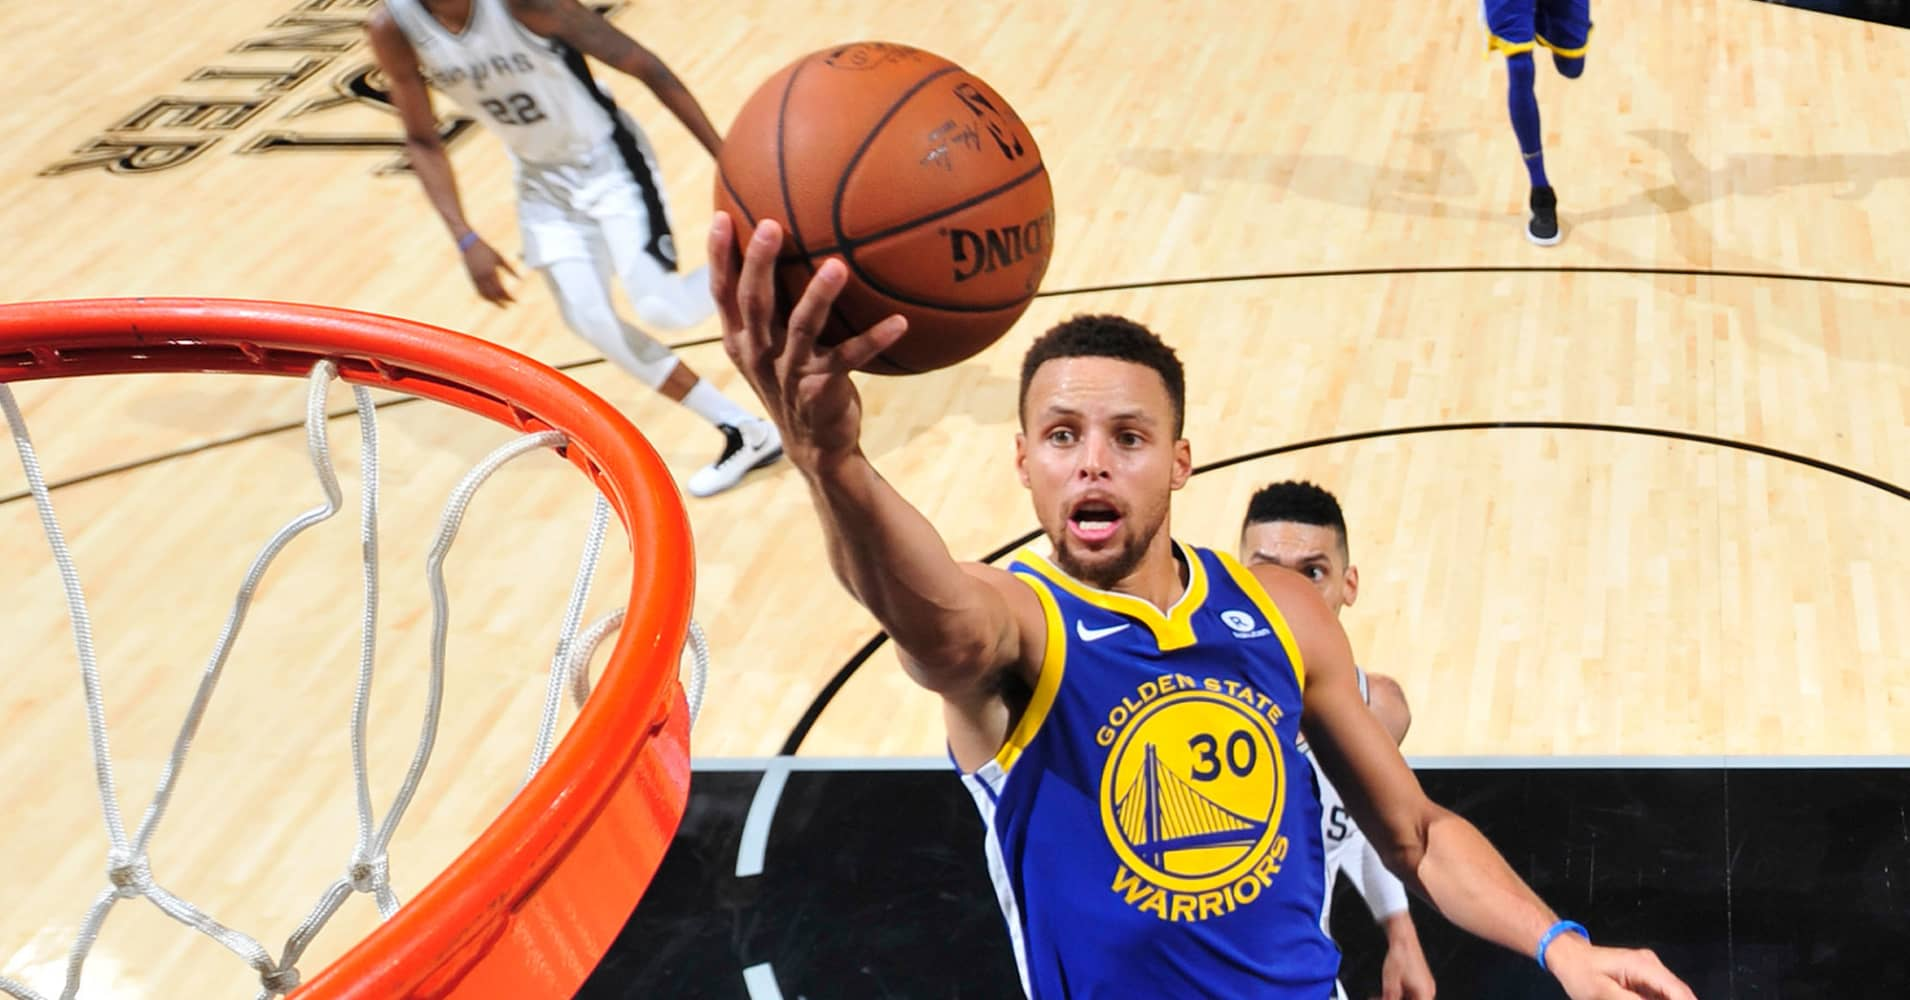 c05ab1cc2 Learn how to play basketball from NBA star Steph Curry online for  90